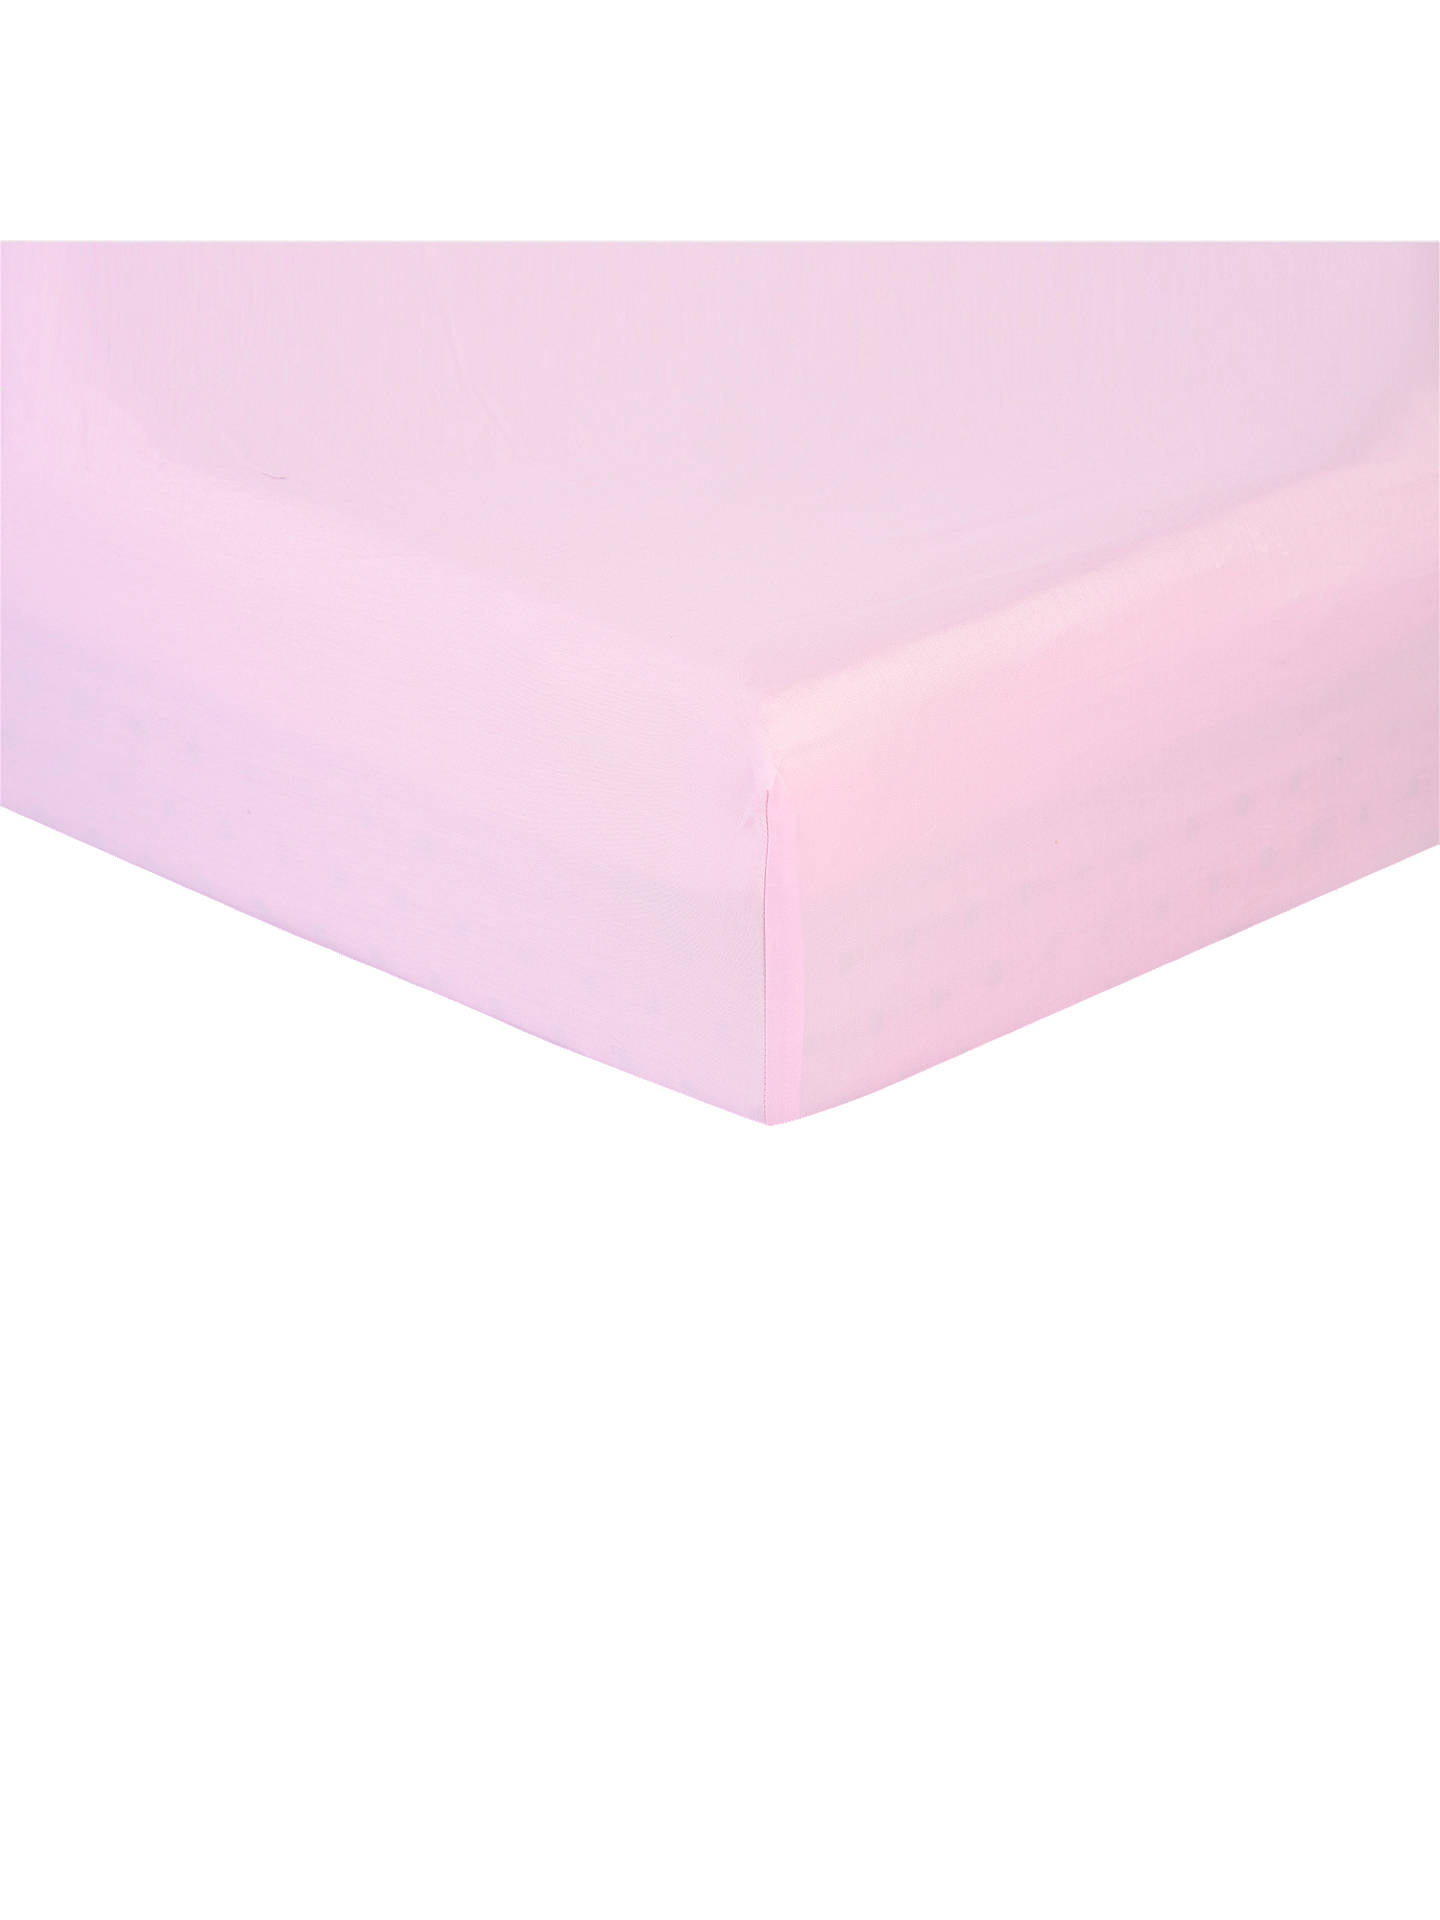 Buy Rachel Riley My Little Princess Fitted Sheet, Single, Light Pink Online at johnlewis.com